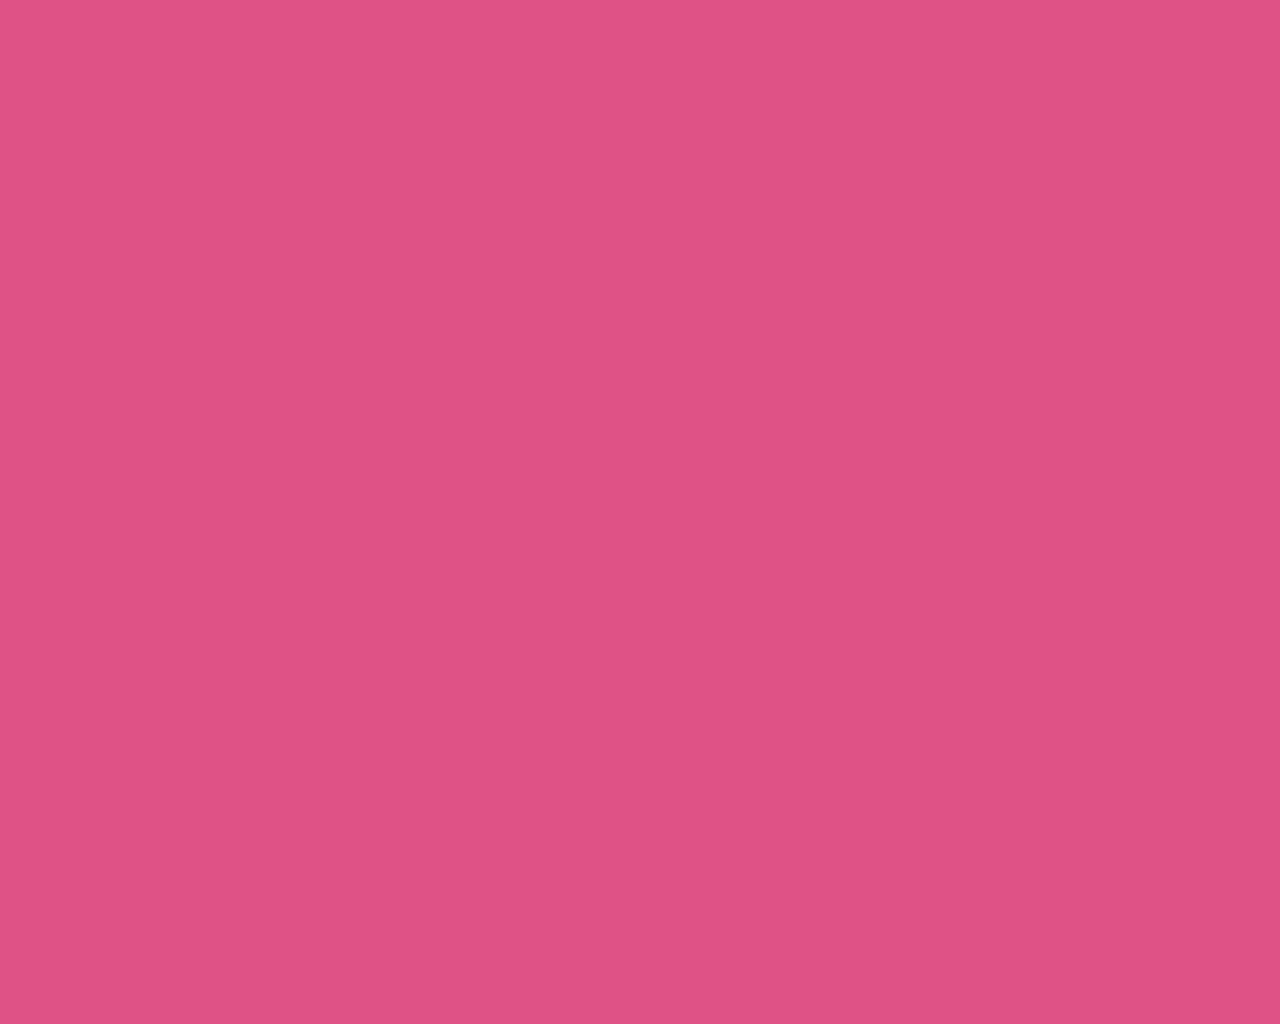 1280x1024 Fandango Pink Solid Color Background